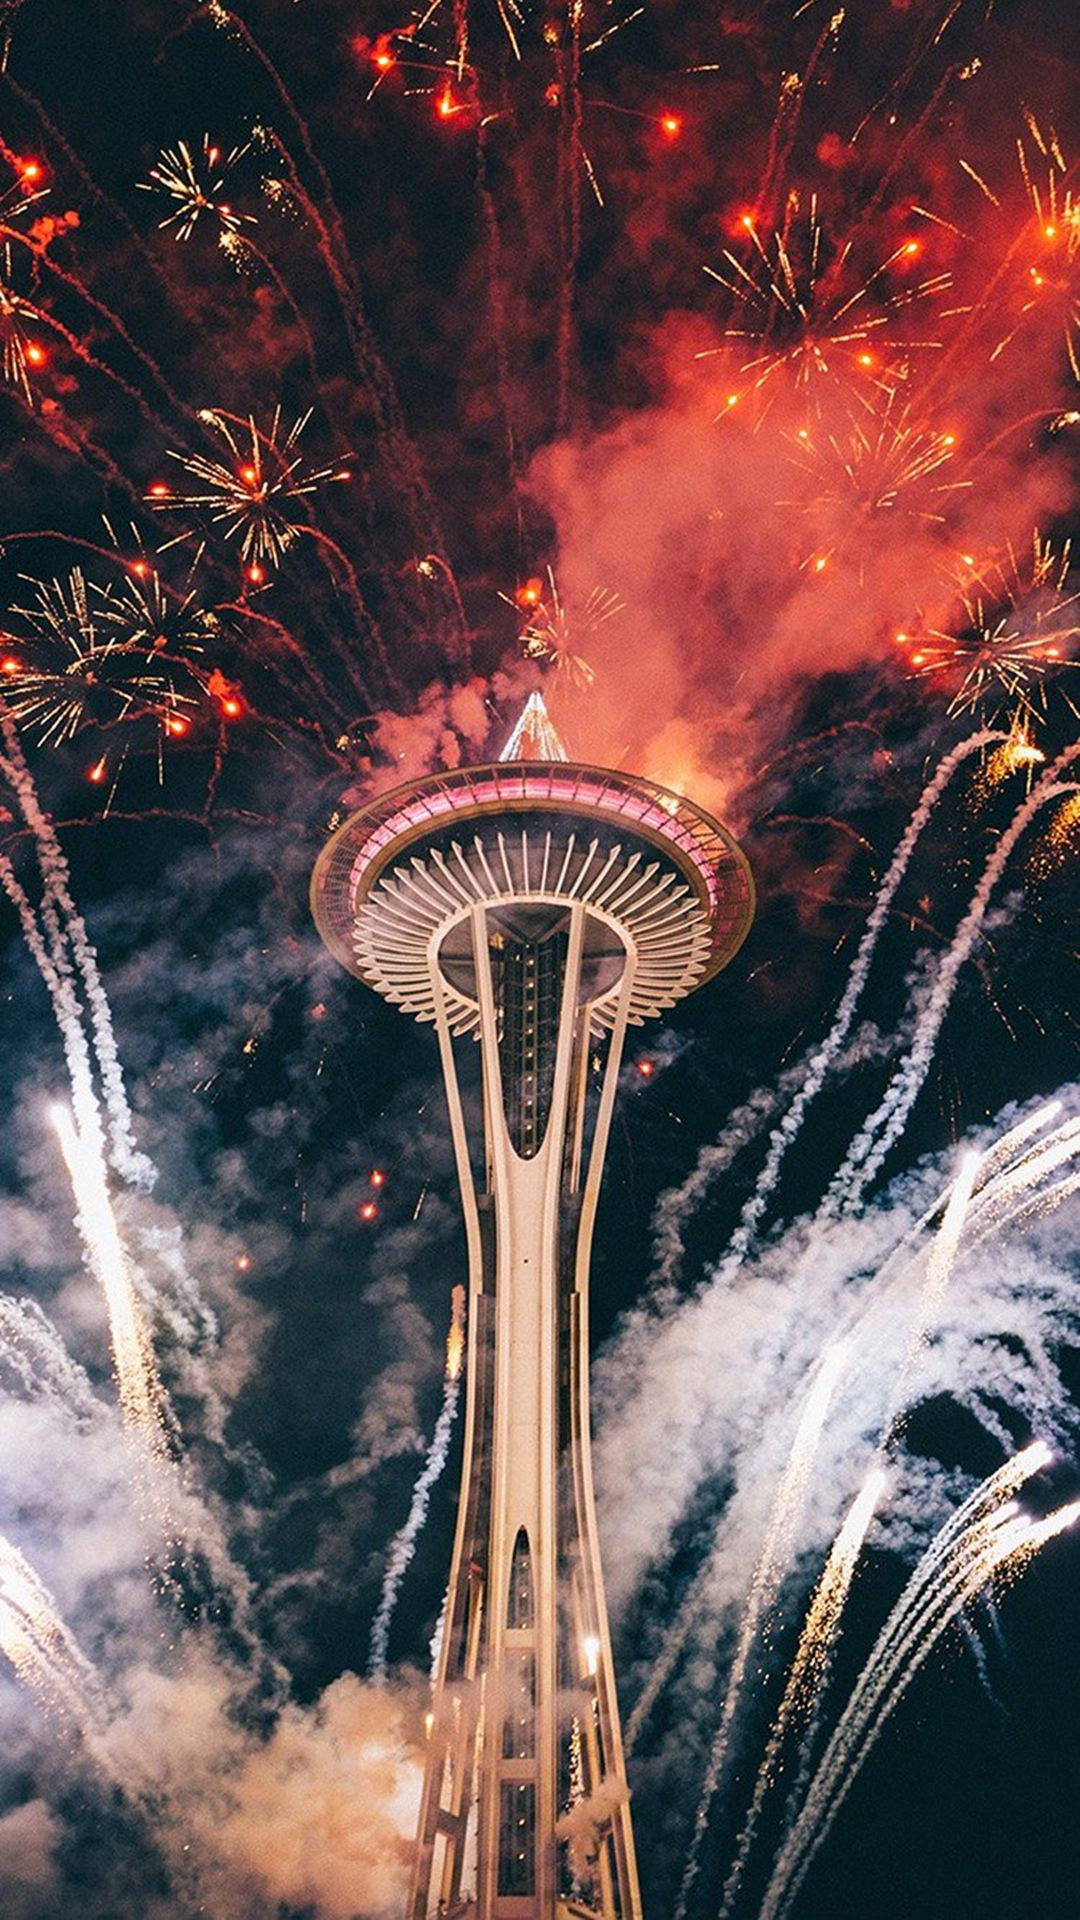 Firework Night Sky Lovely Tower City Iphone 6 Plus Wallpaper Fireworks Photography Photographing Fireworks Fireworks Photo